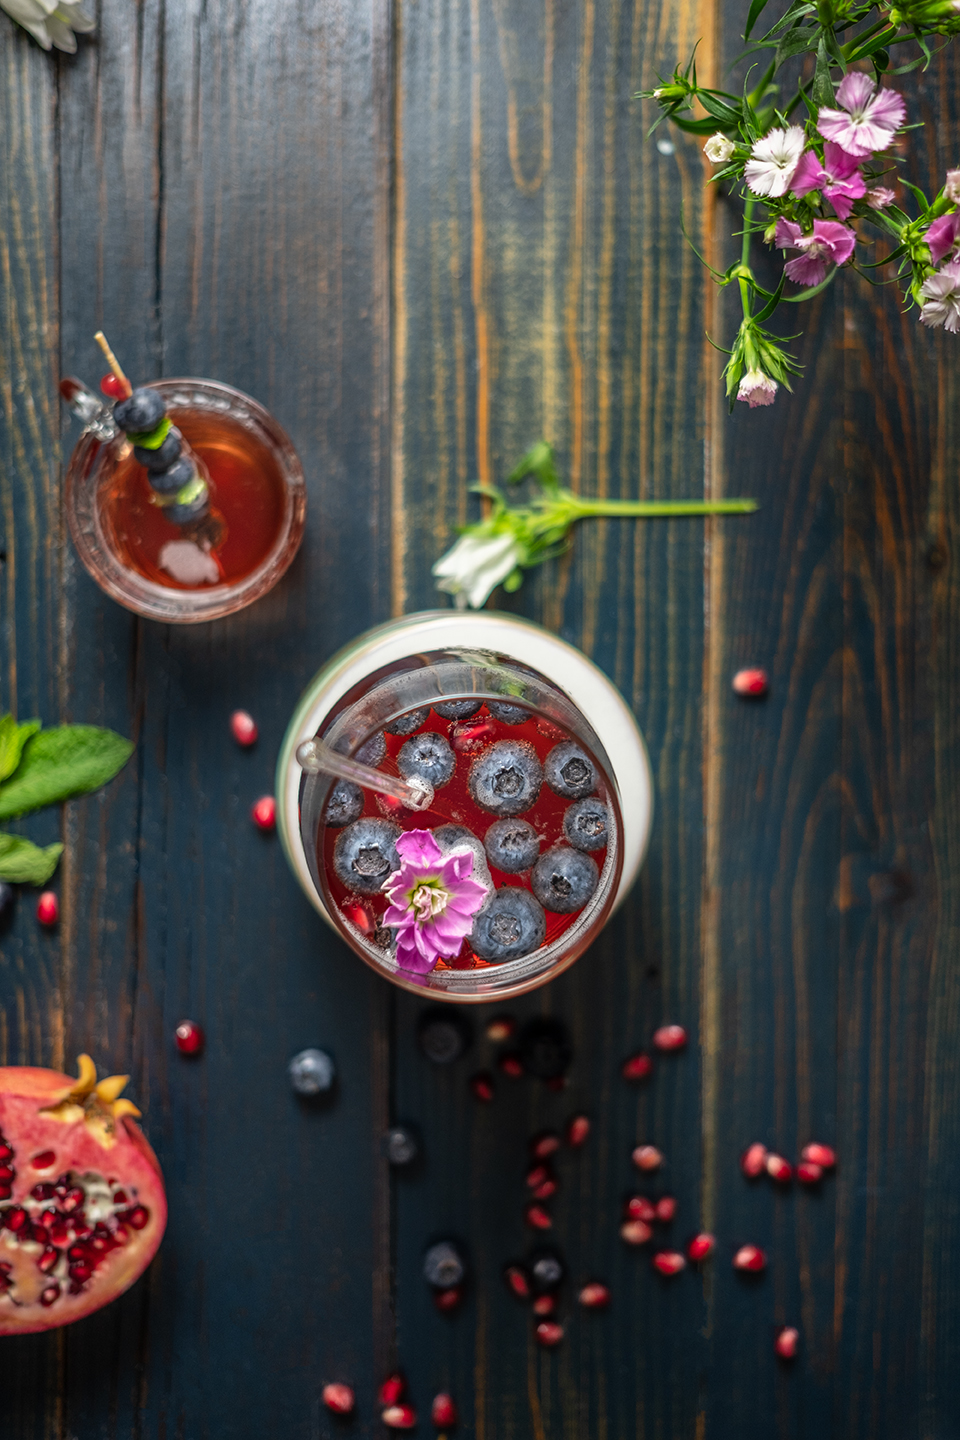 Kenny Cocktail with black tea and pomegranate juice in two glasses on a blue wood background with flowers.